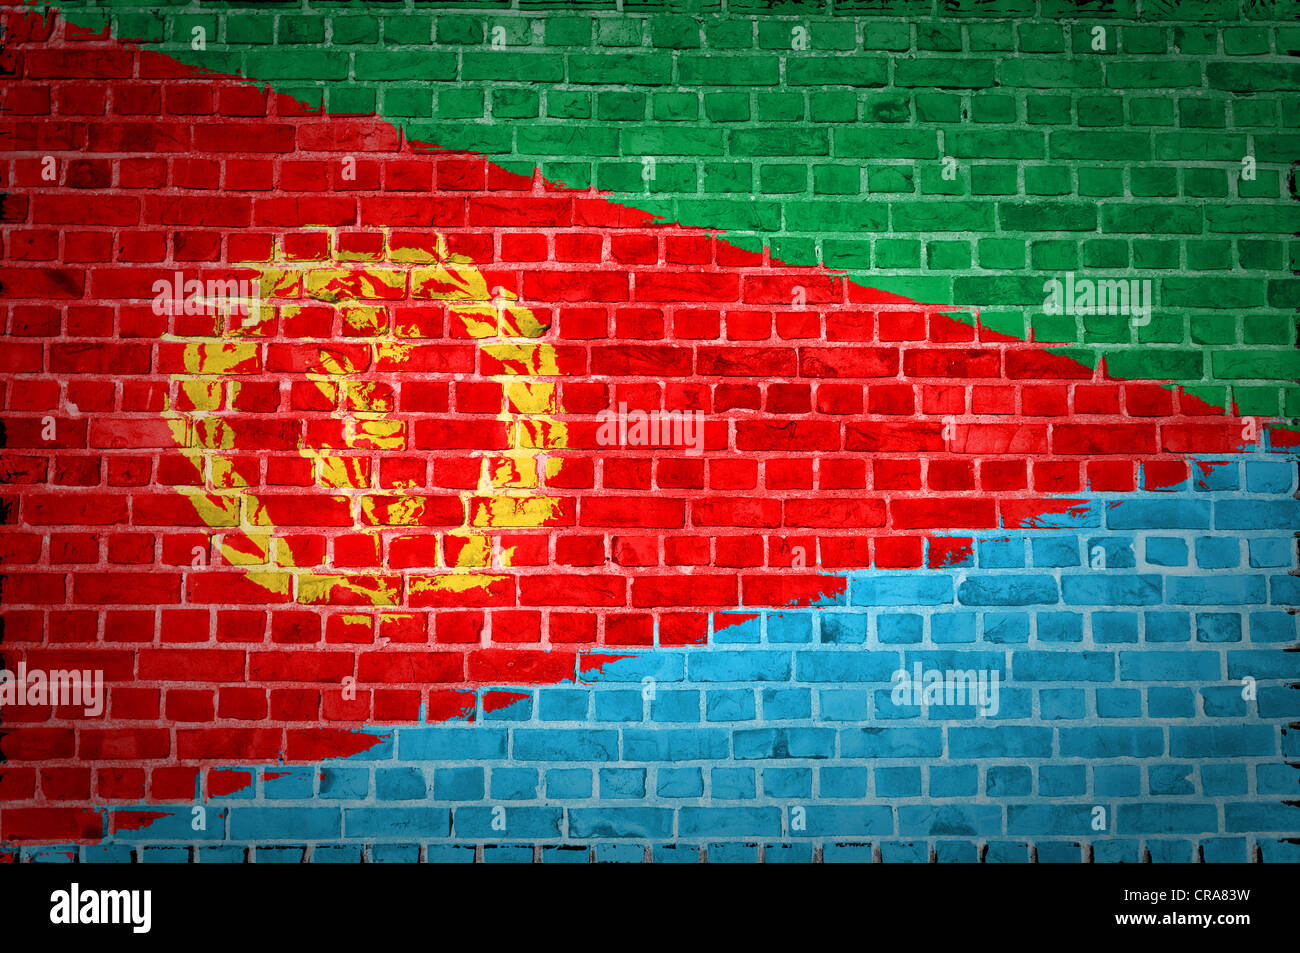 An image of the Eritrea flag painted on a brick wall in an urban location - Stock Image